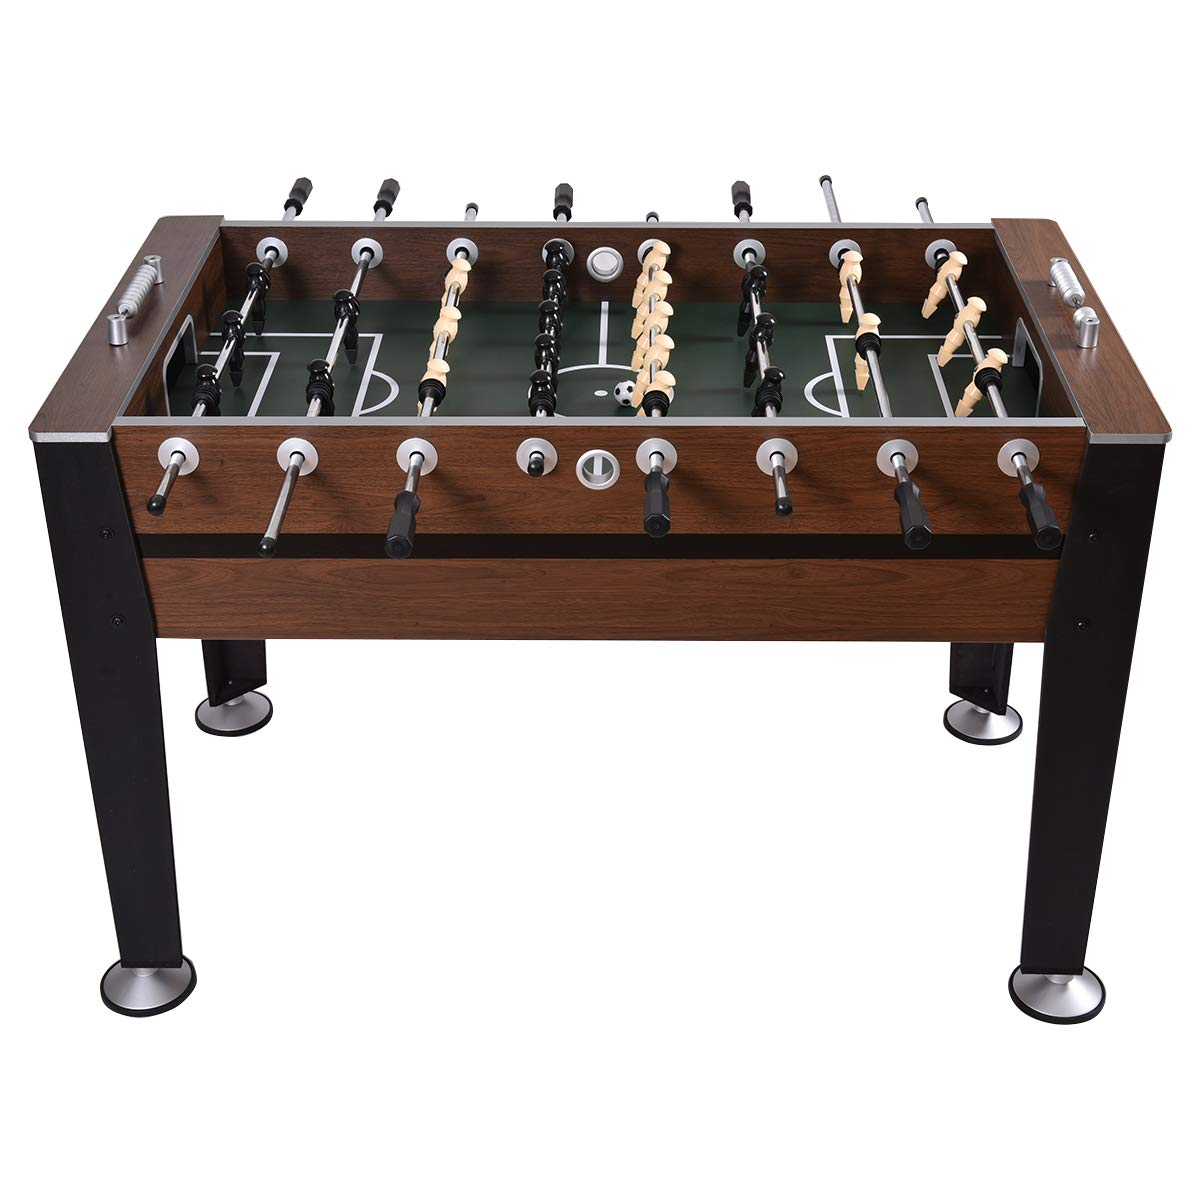 GYMAX 54'' Foosball Table Indoor Soccer Game Table for Adults Kids Room Sports Game